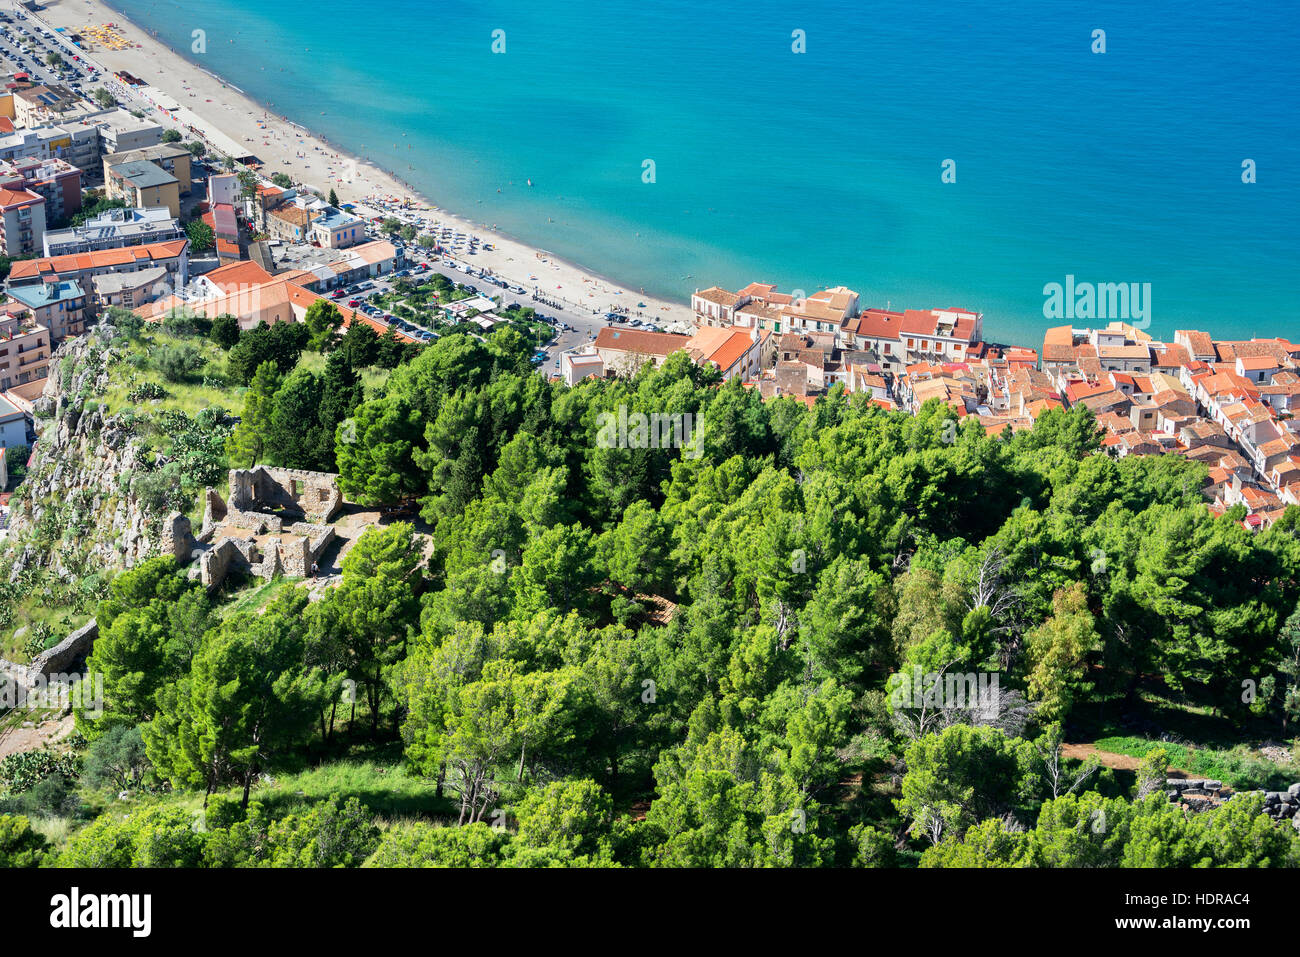 Town beach and cliff La Rocca view, Cefalu, Sicily, Italy, Europe - Stock Image